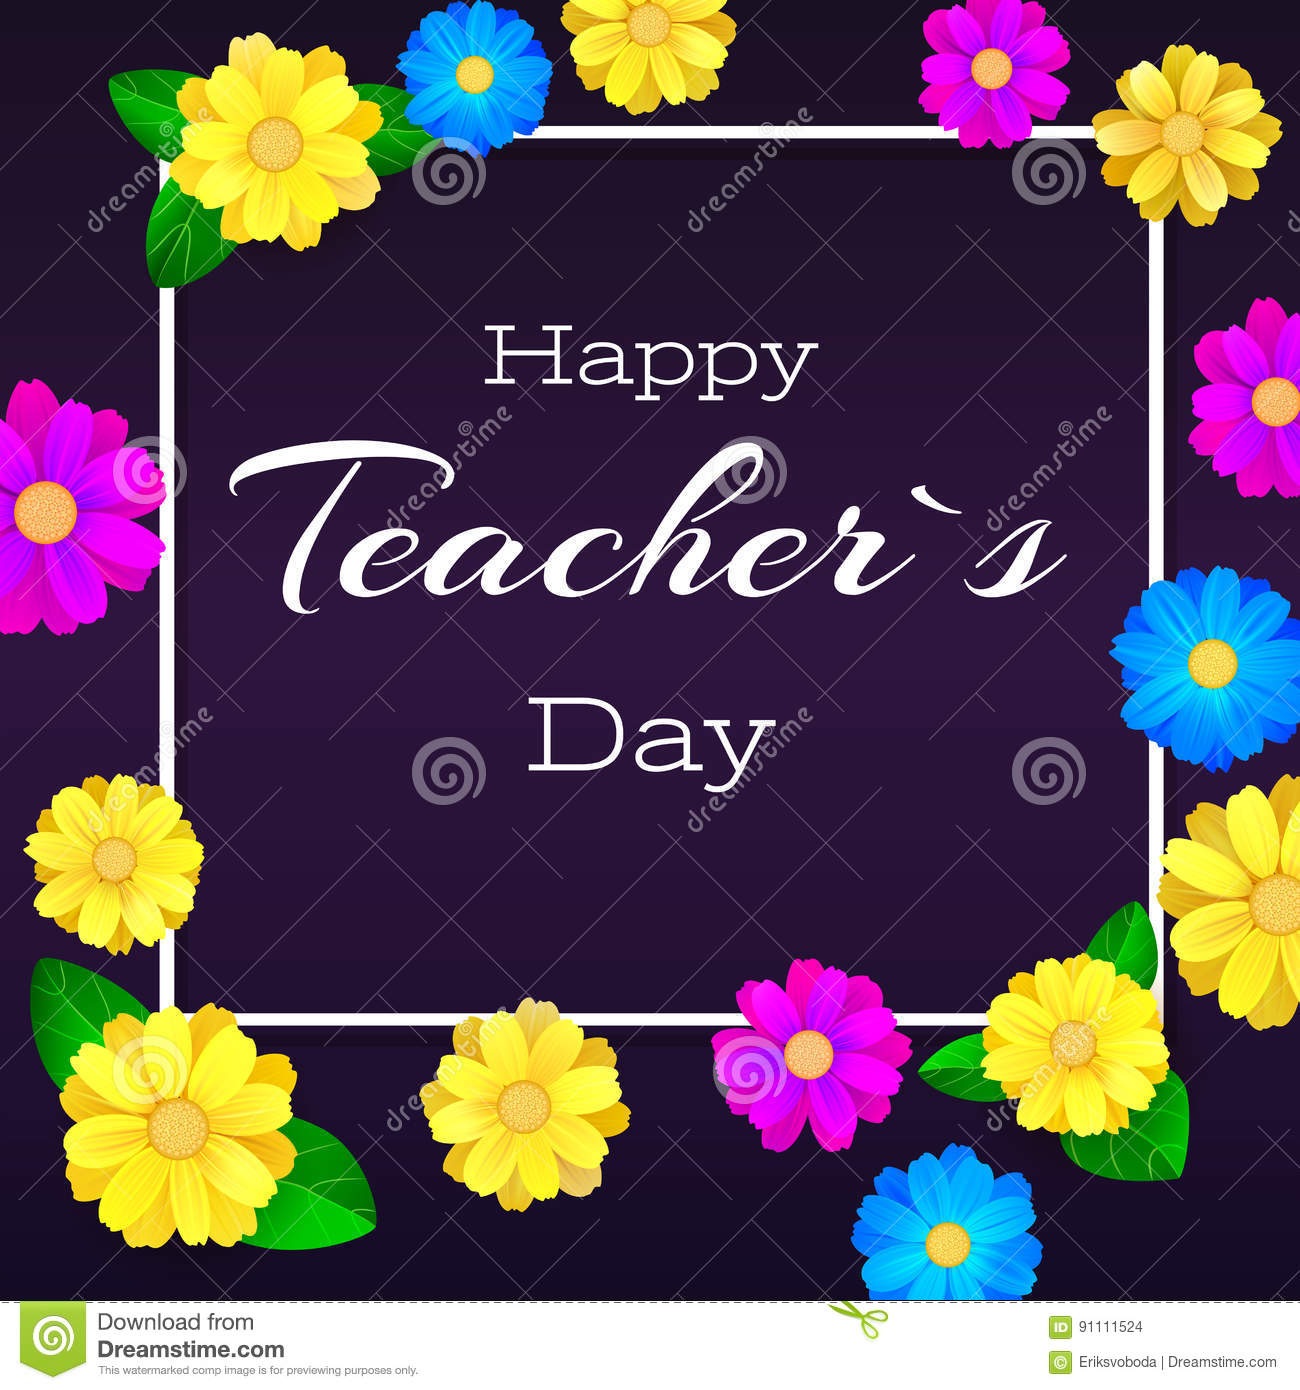 Happy teacher day greeting banner for your congratulations cards download comp m4hsunfo